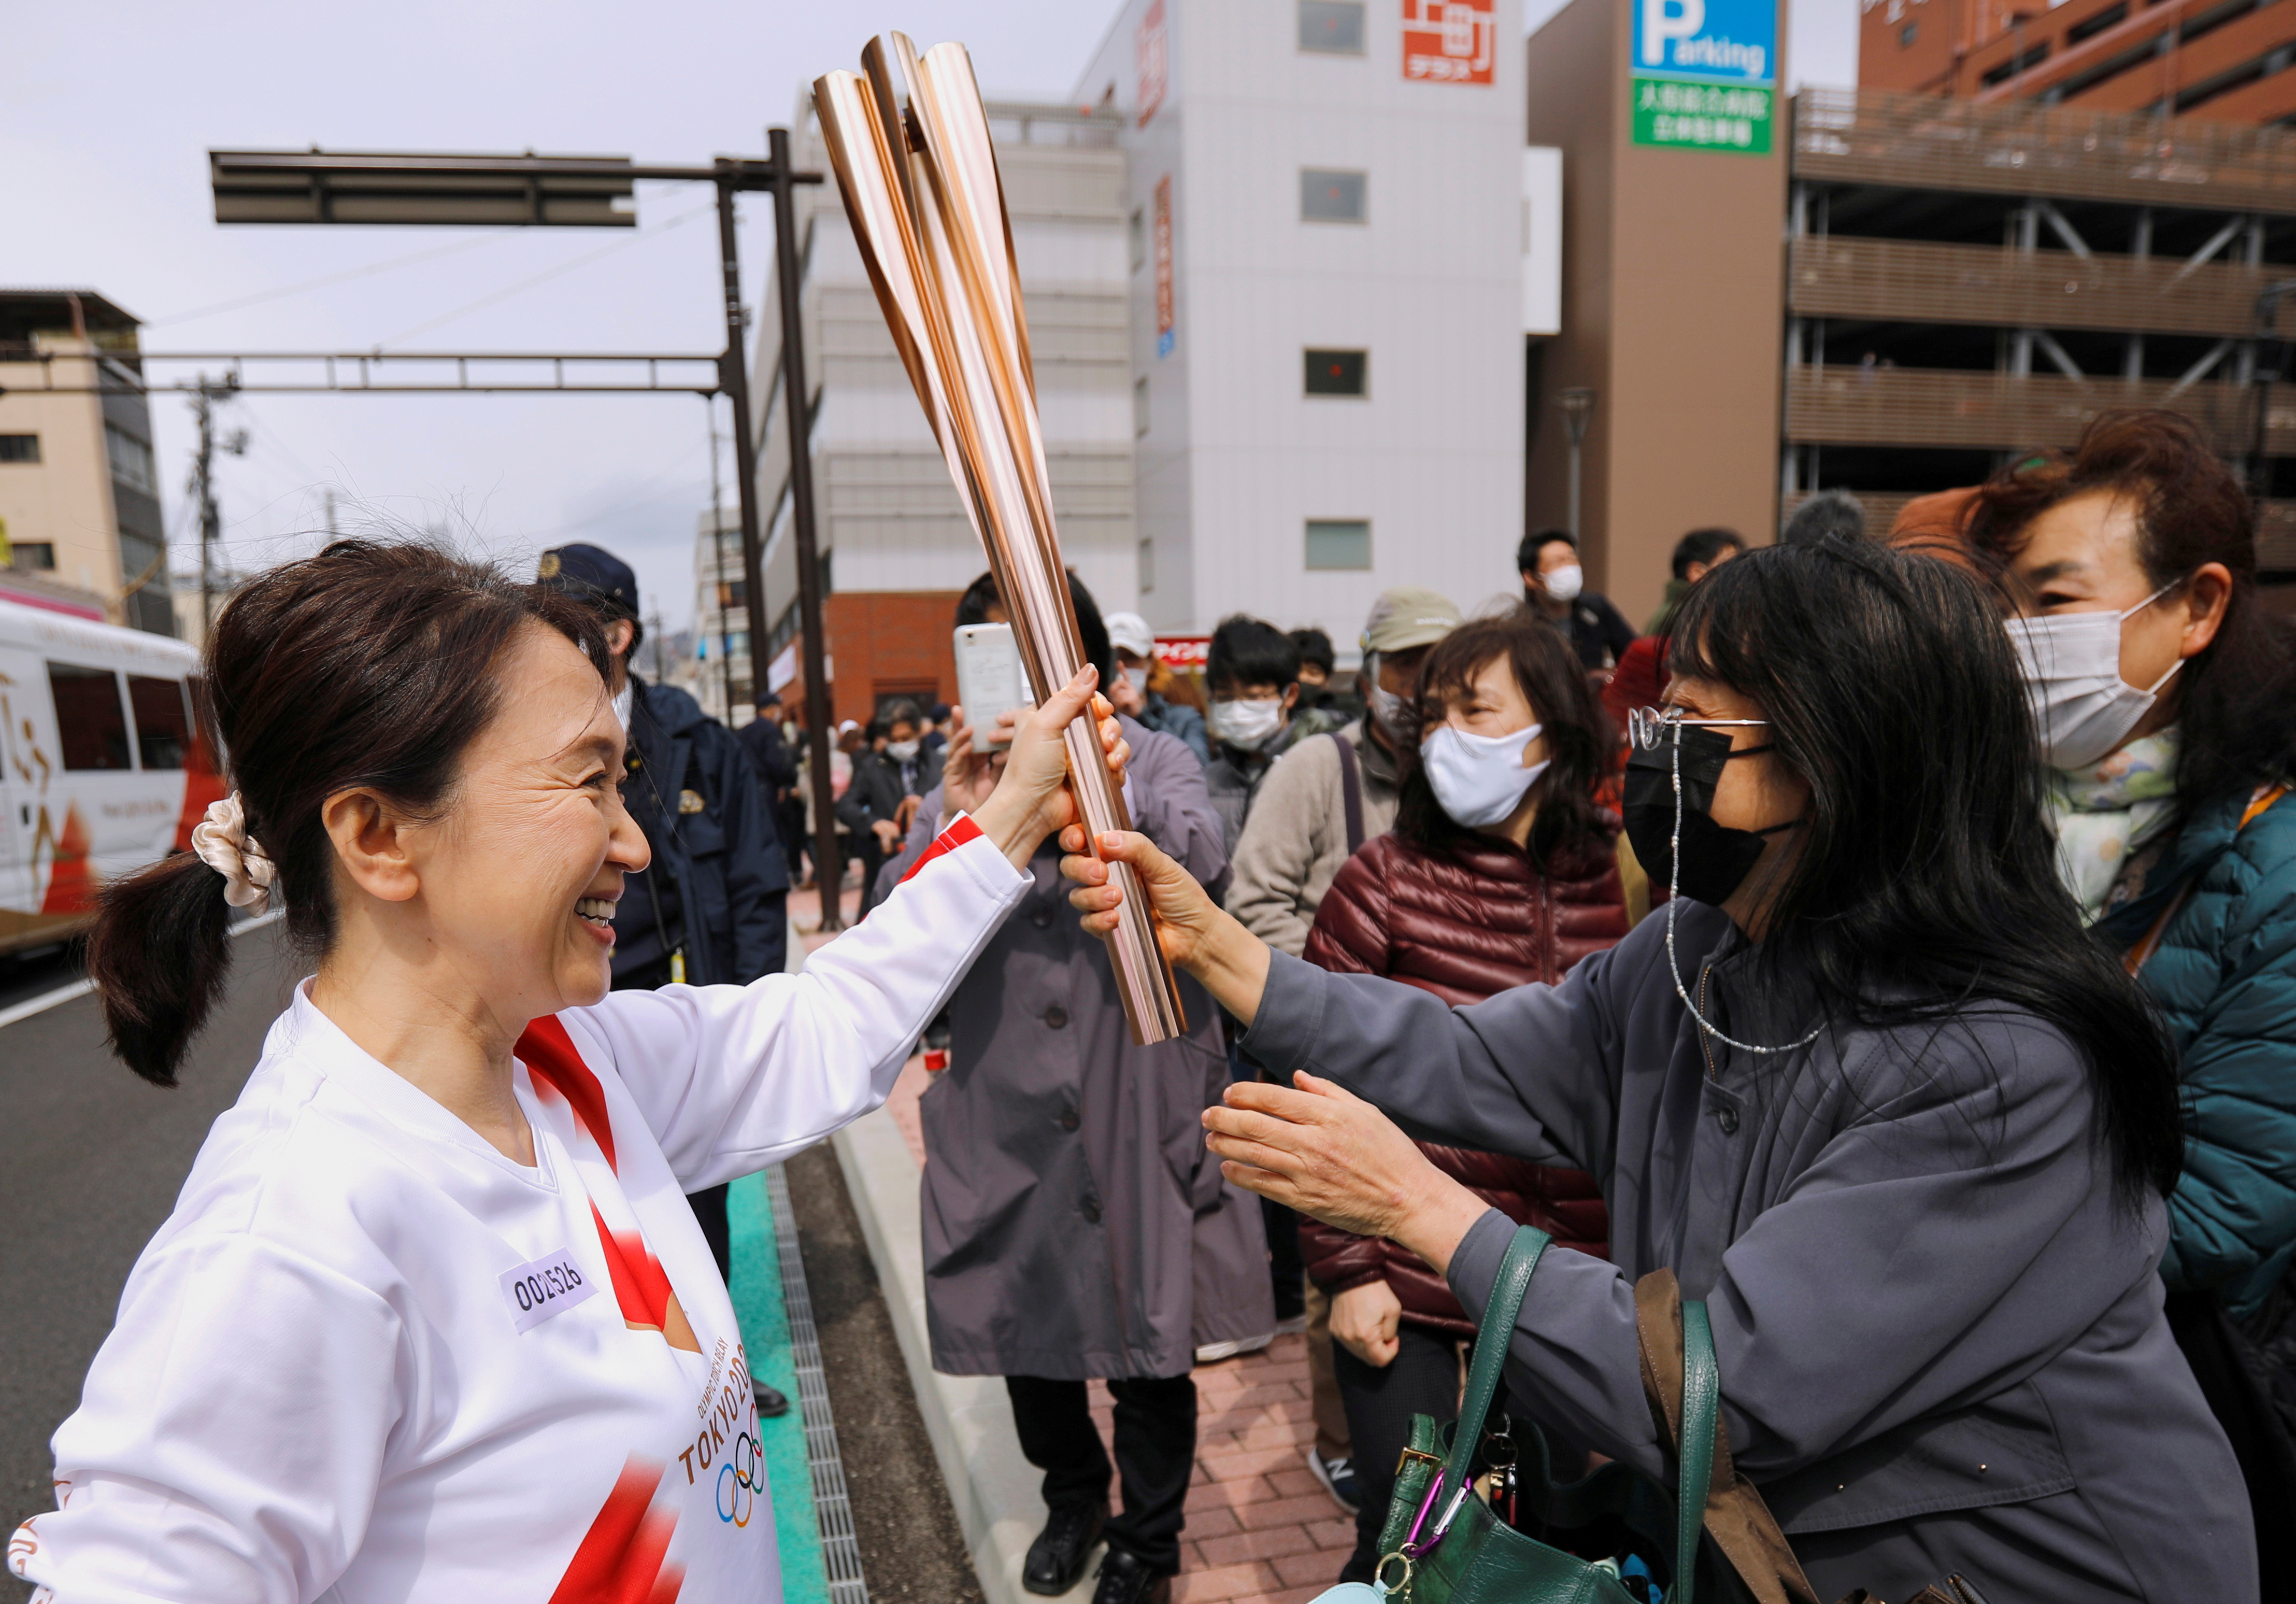 Spectators try to touch the torch carried by torchbearer Junko Ito, after her run during the Tokyo 2020 Olympic torch relay on the second day of the relay in Fukushima, Japan March 26, 2021. REUTERS/Issei Kato/File Photo